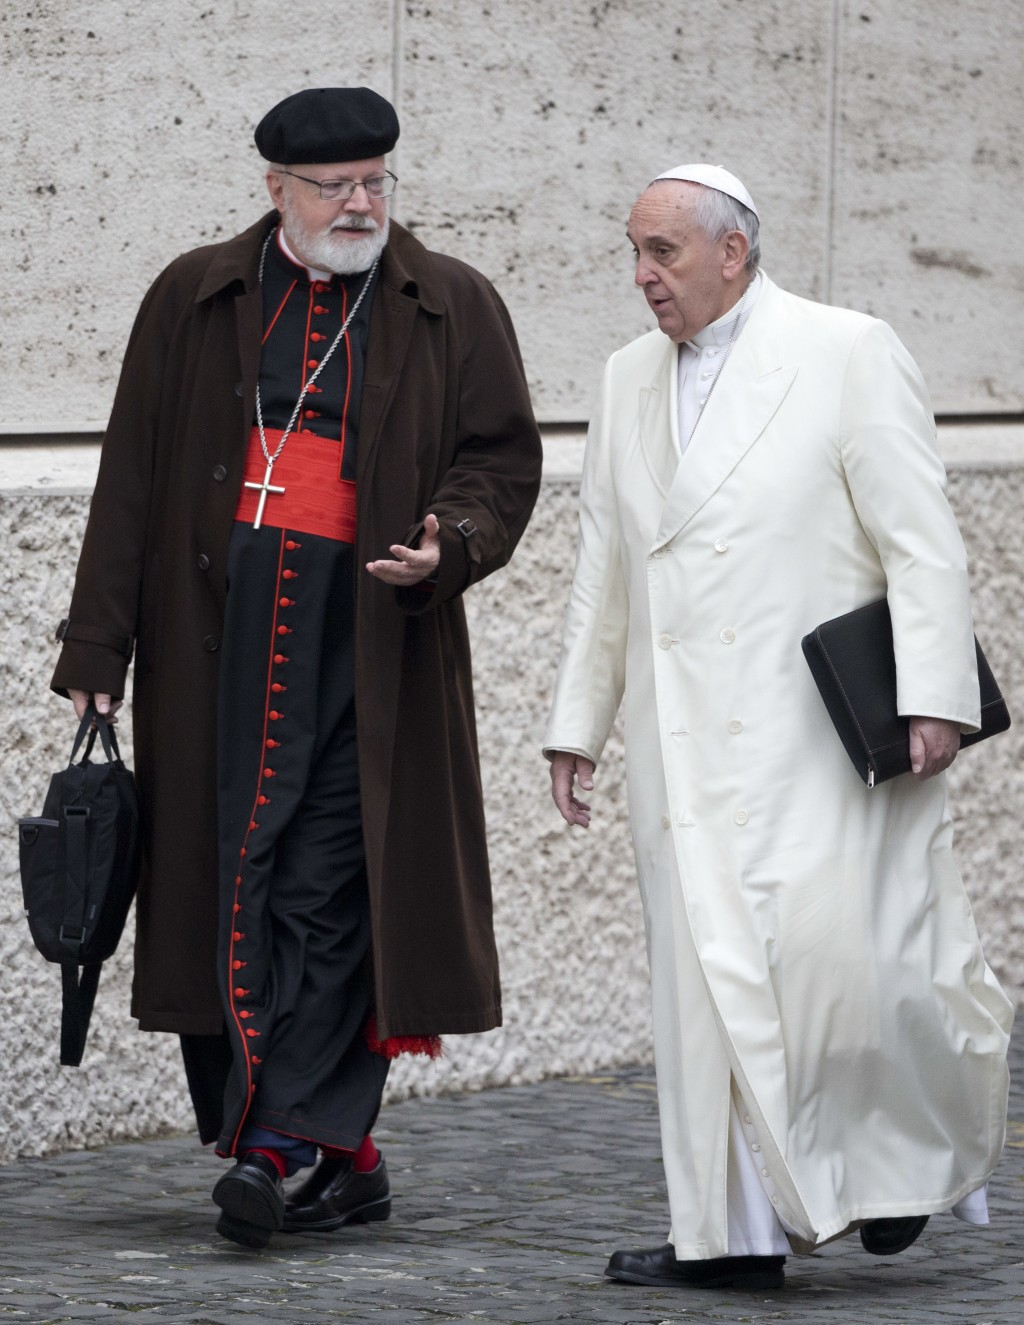 FILE - In this Feb. 13, 2015 file photo, Pope Francis talks with his top abuse adviser Cardinal Sean Patrick O'Malley, left, as they arrive for a spec